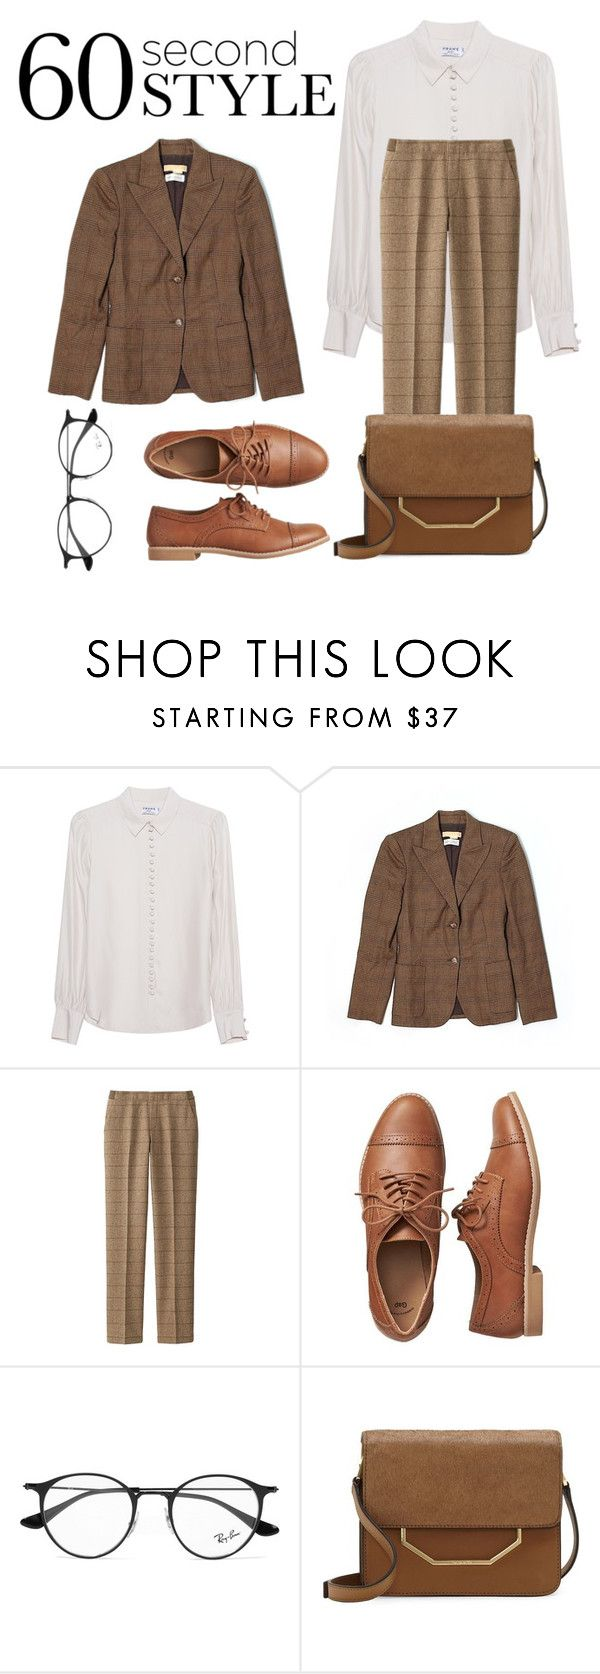 """""""60-Second Interview Style"""" by fiqihep ❤ liked on Polyvore featuring Frame Denim, Michael Kors, Uniqlo, Gap, Ray-Ban, Louise et Cie, jobinterview and 60secondstyle"""